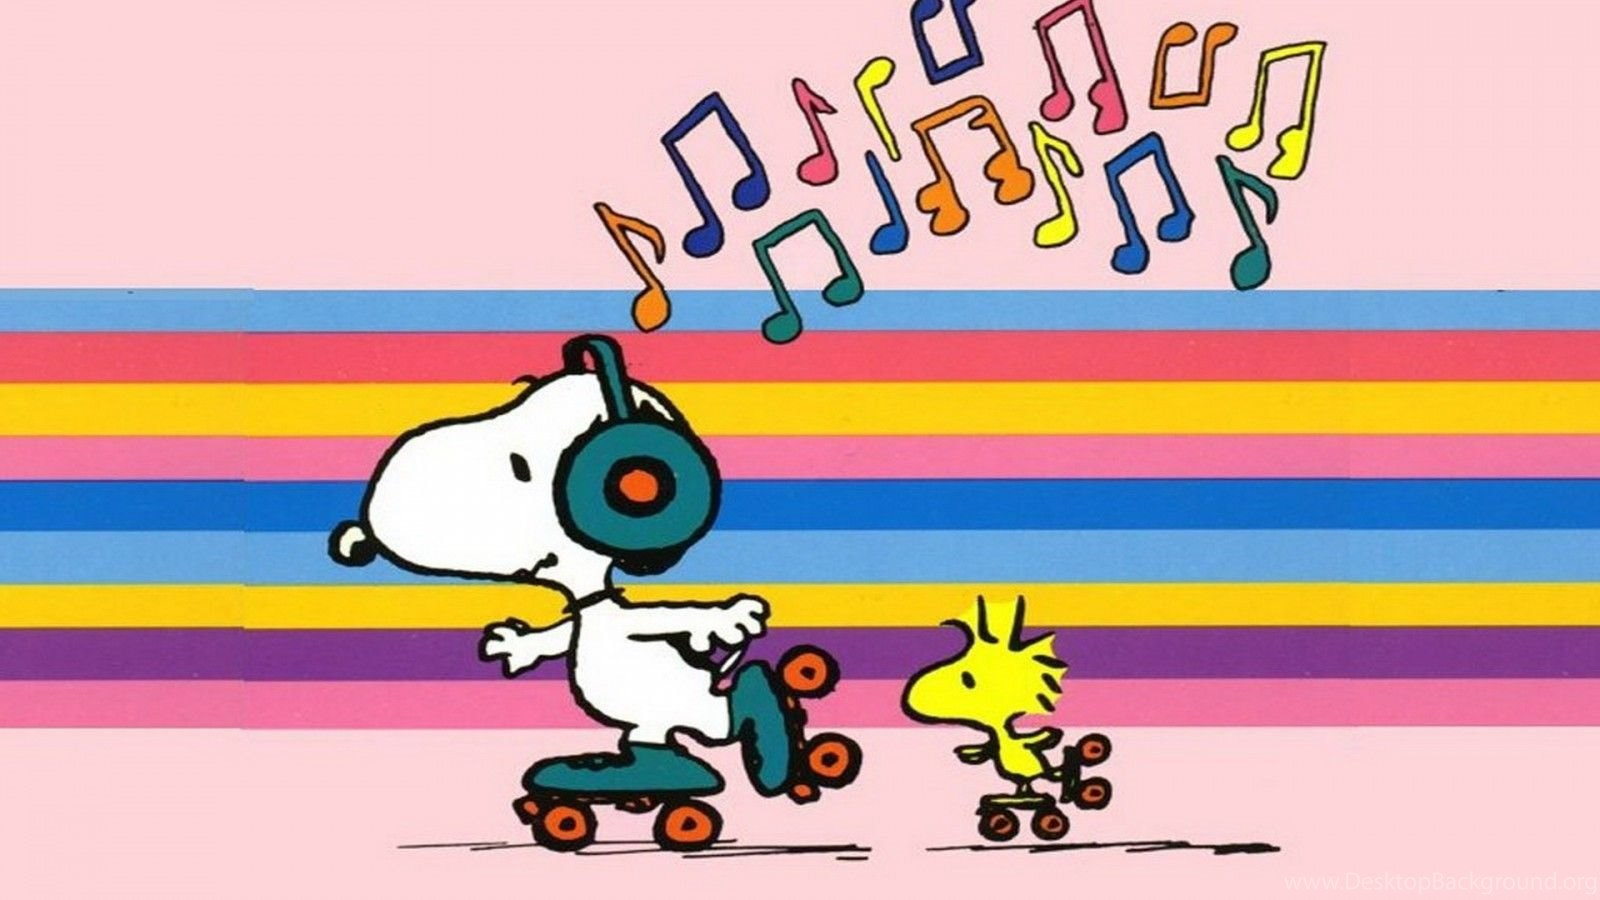 Snoopy and woodstock 1600x900 wallpapers free hd wallpapers for popular voltagebd Images